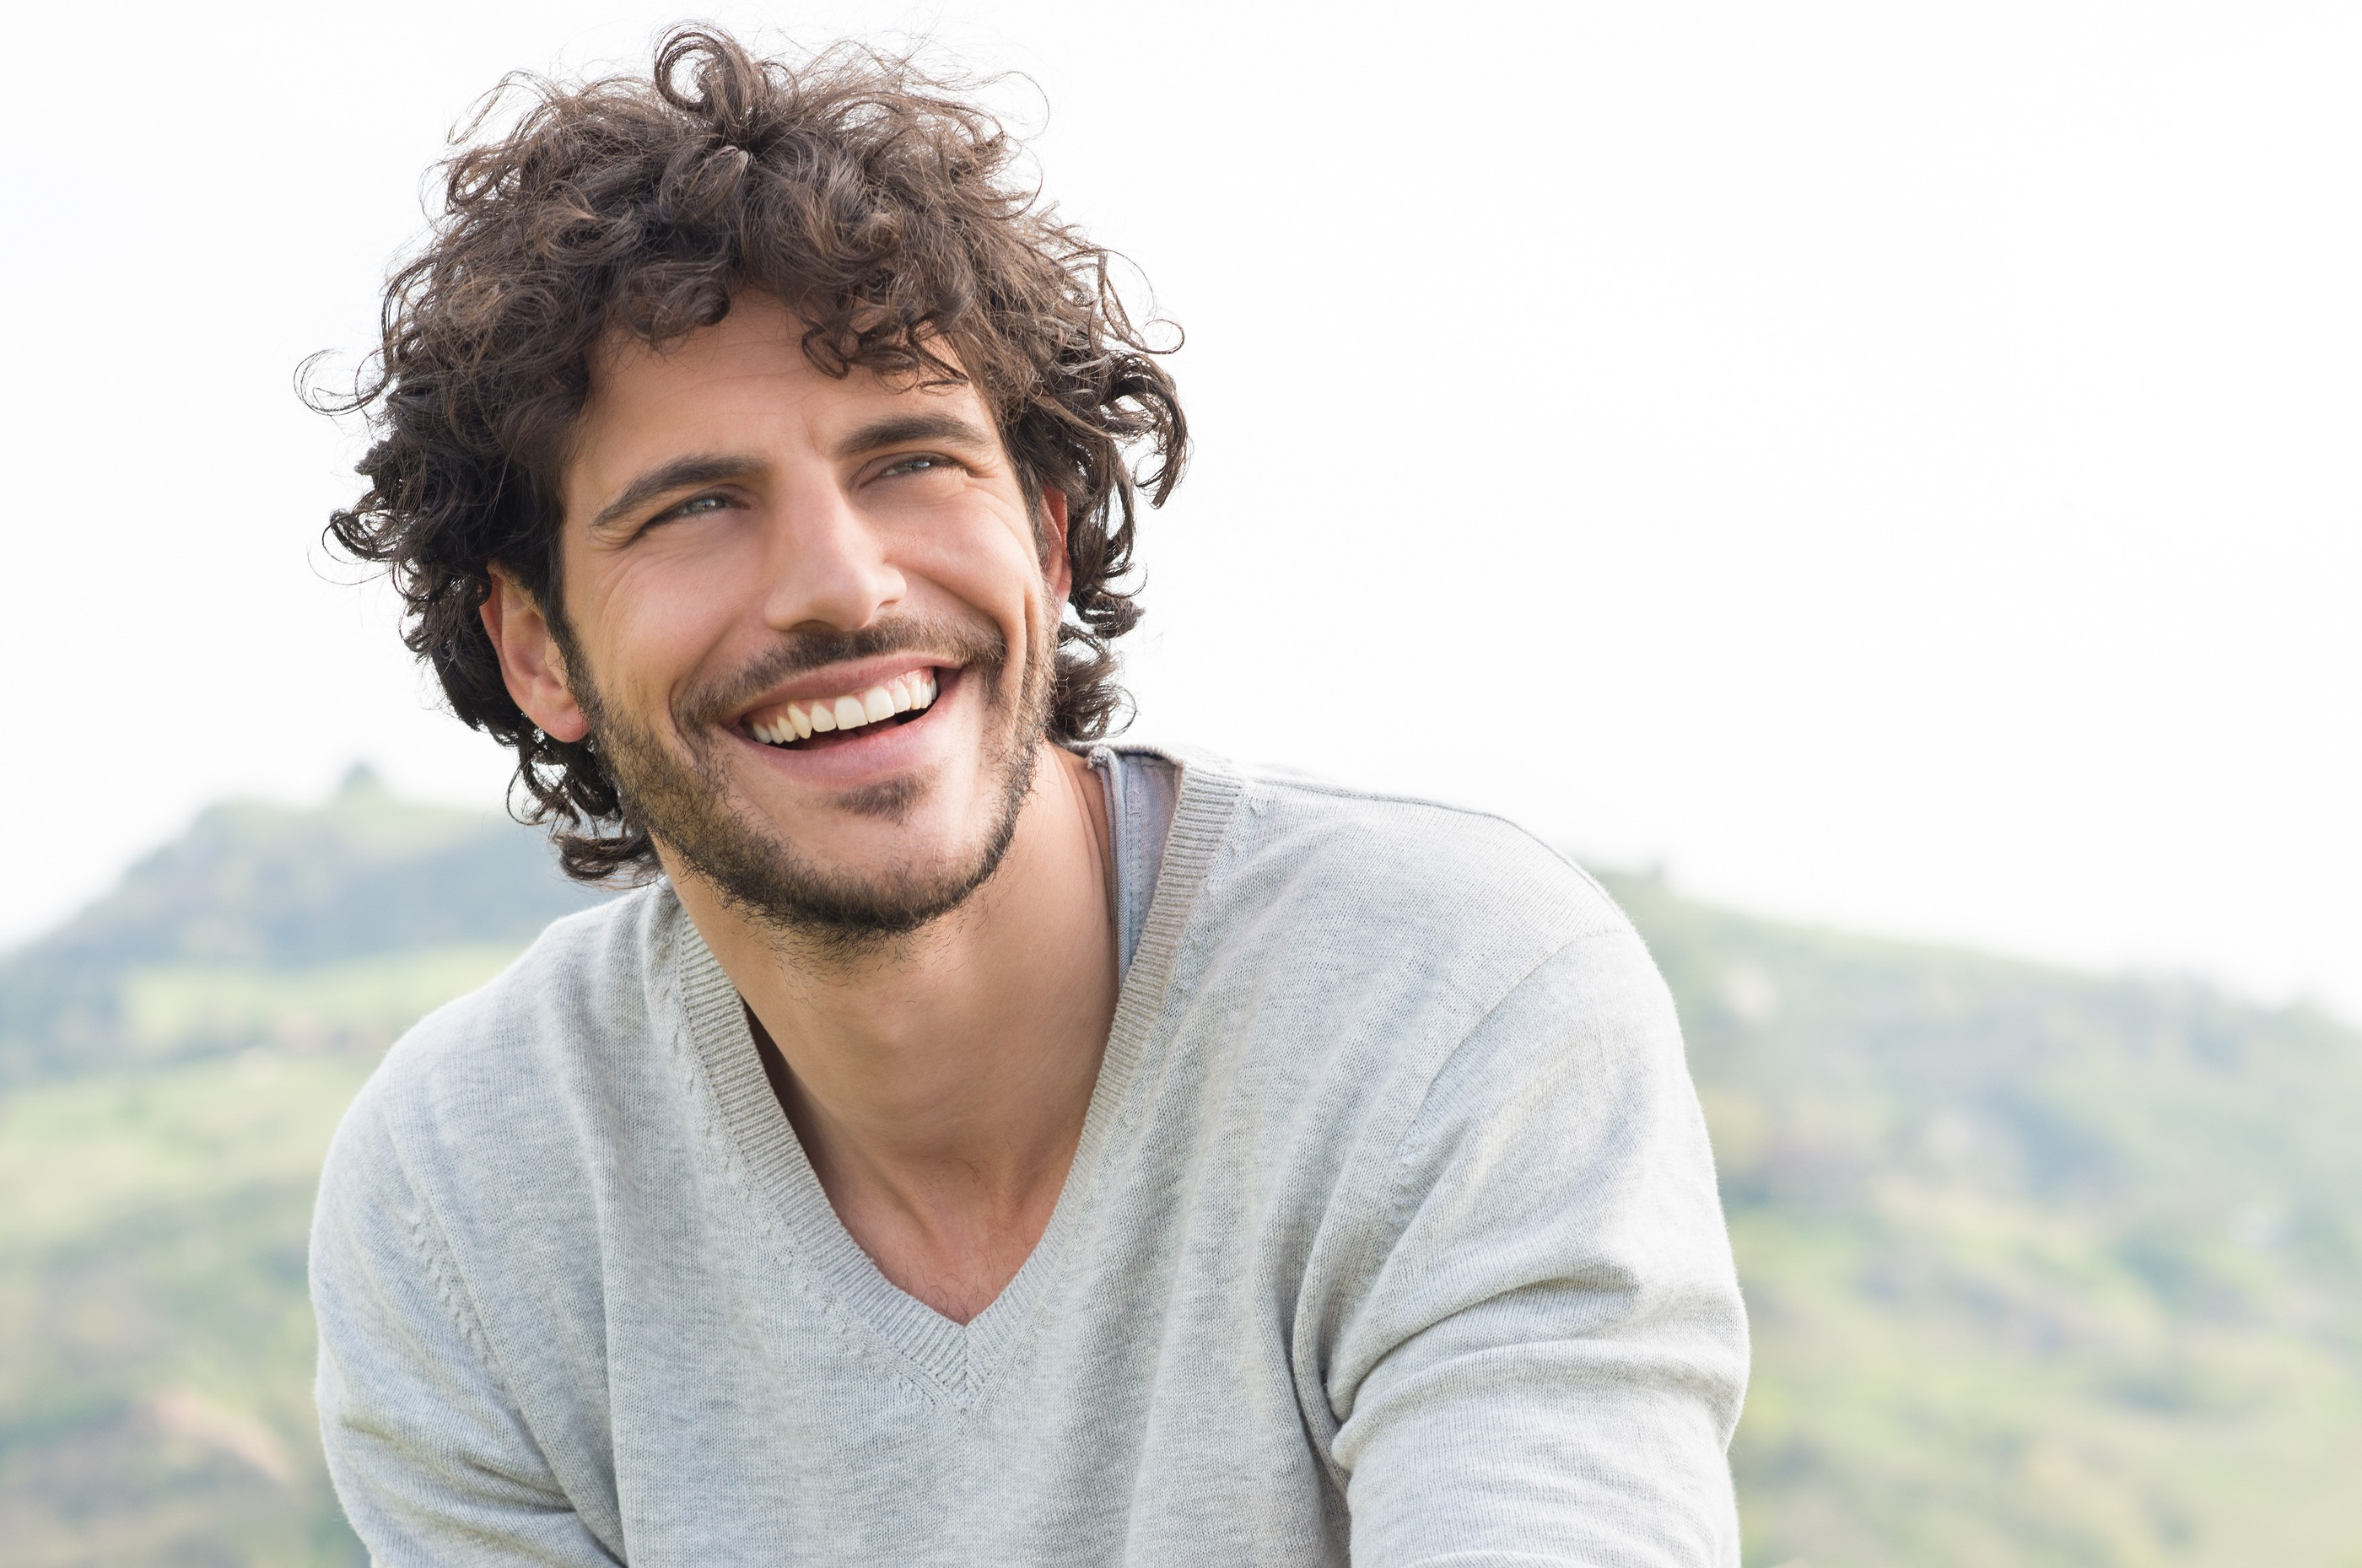 Portrait Of Young Handsome Man Smiling Outdoor